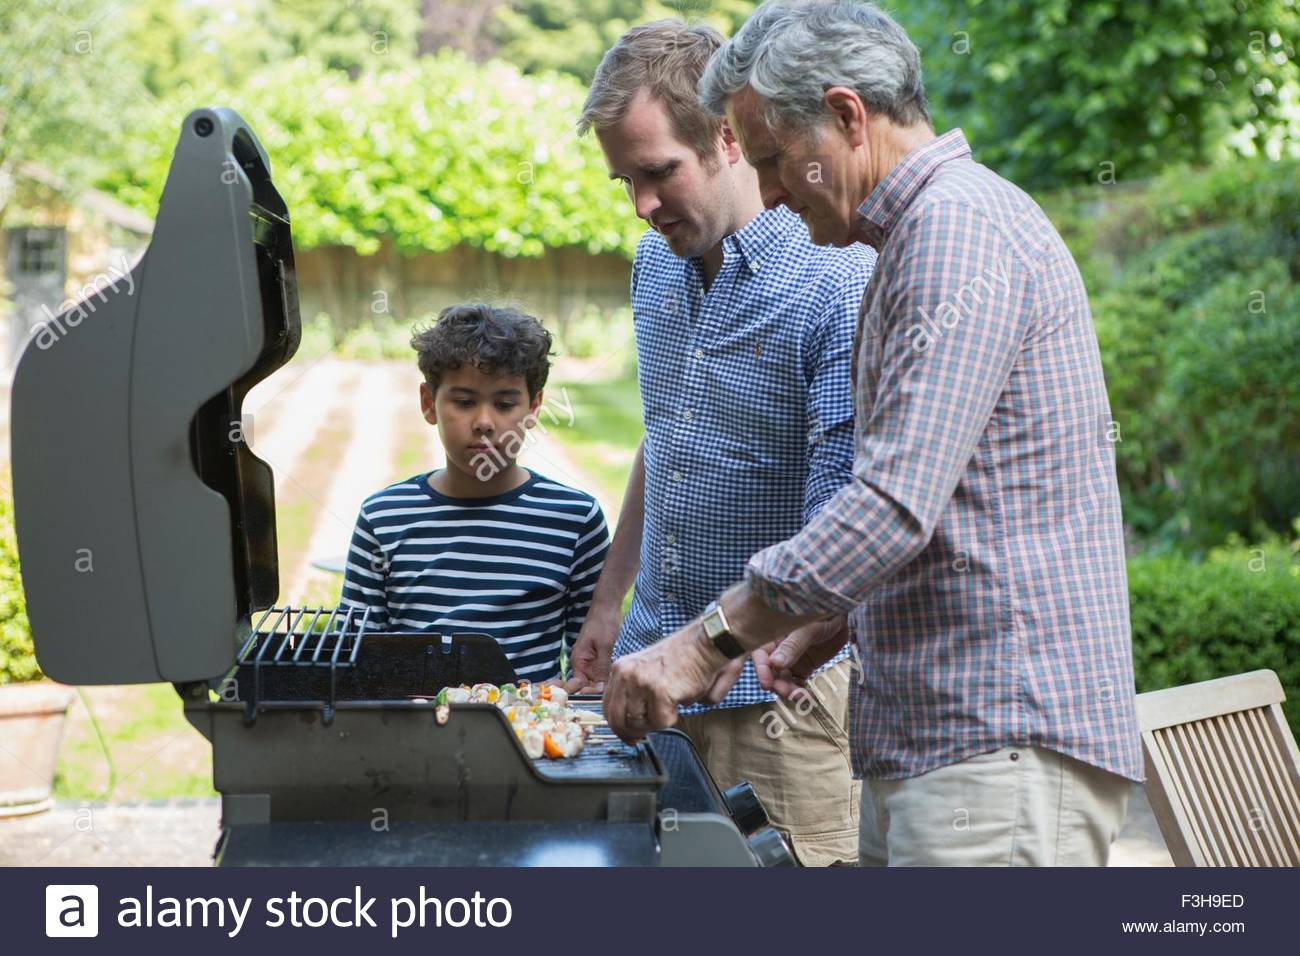 Three generation family preparing food on barbecue - Stock Image